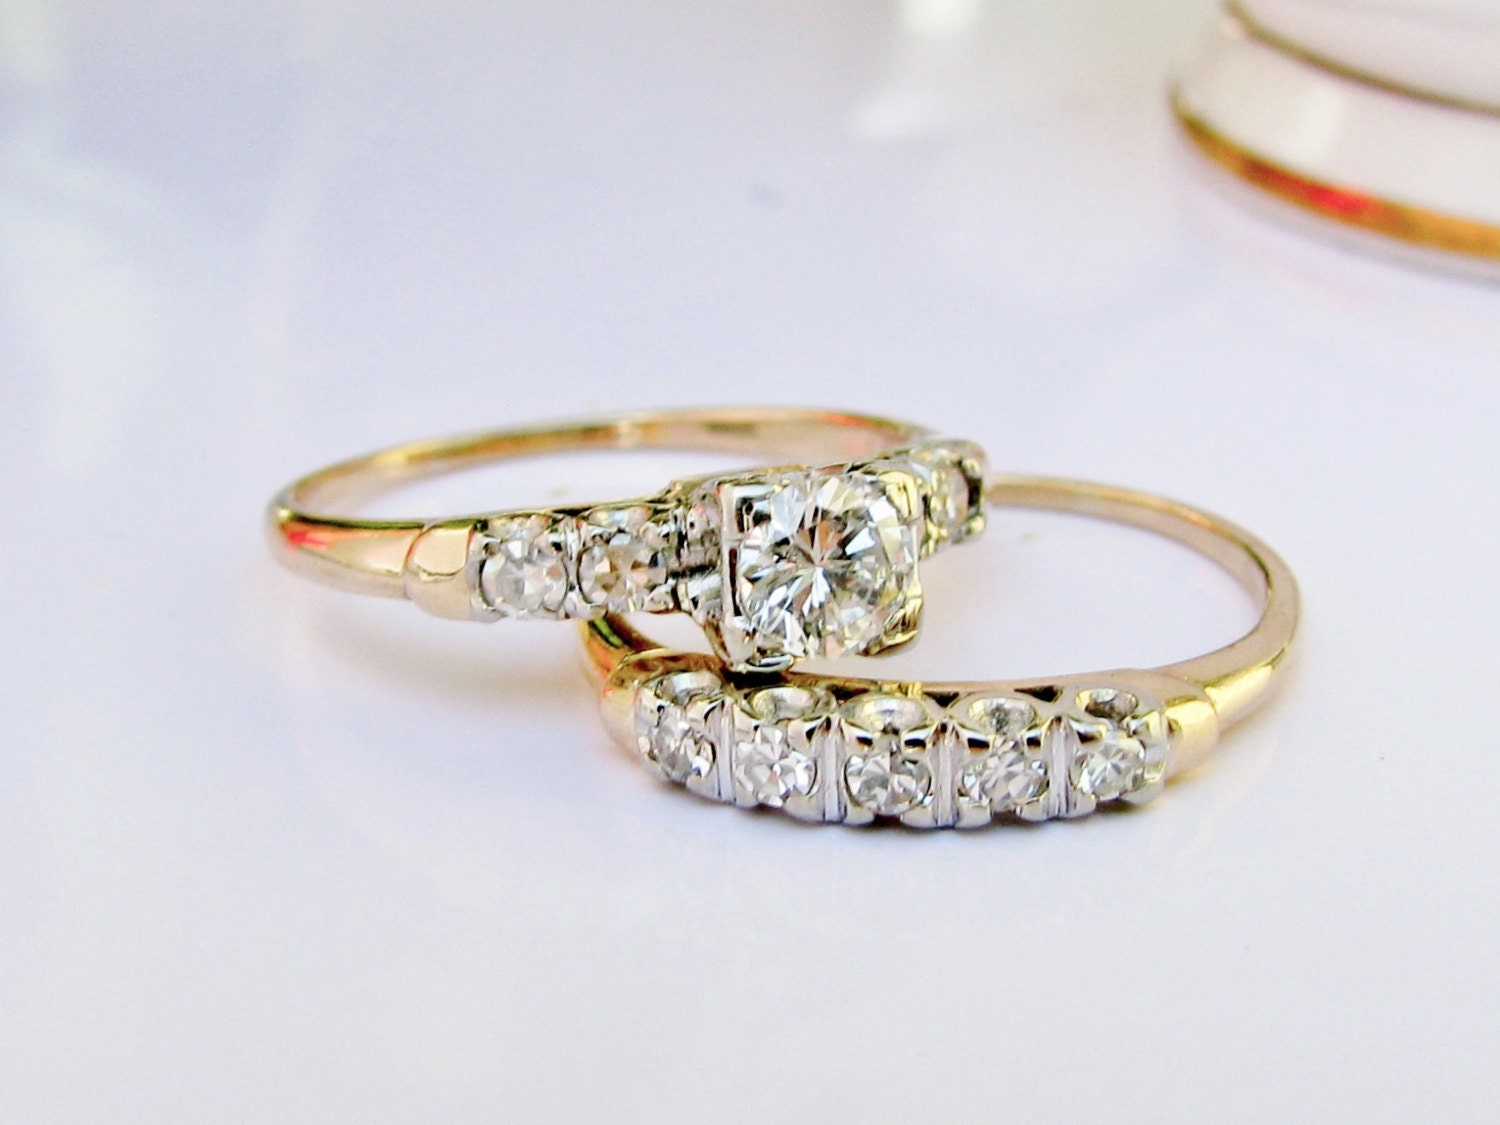 Vintage Engagement Ring Diamond Wedding Band Set 14K Two Tone